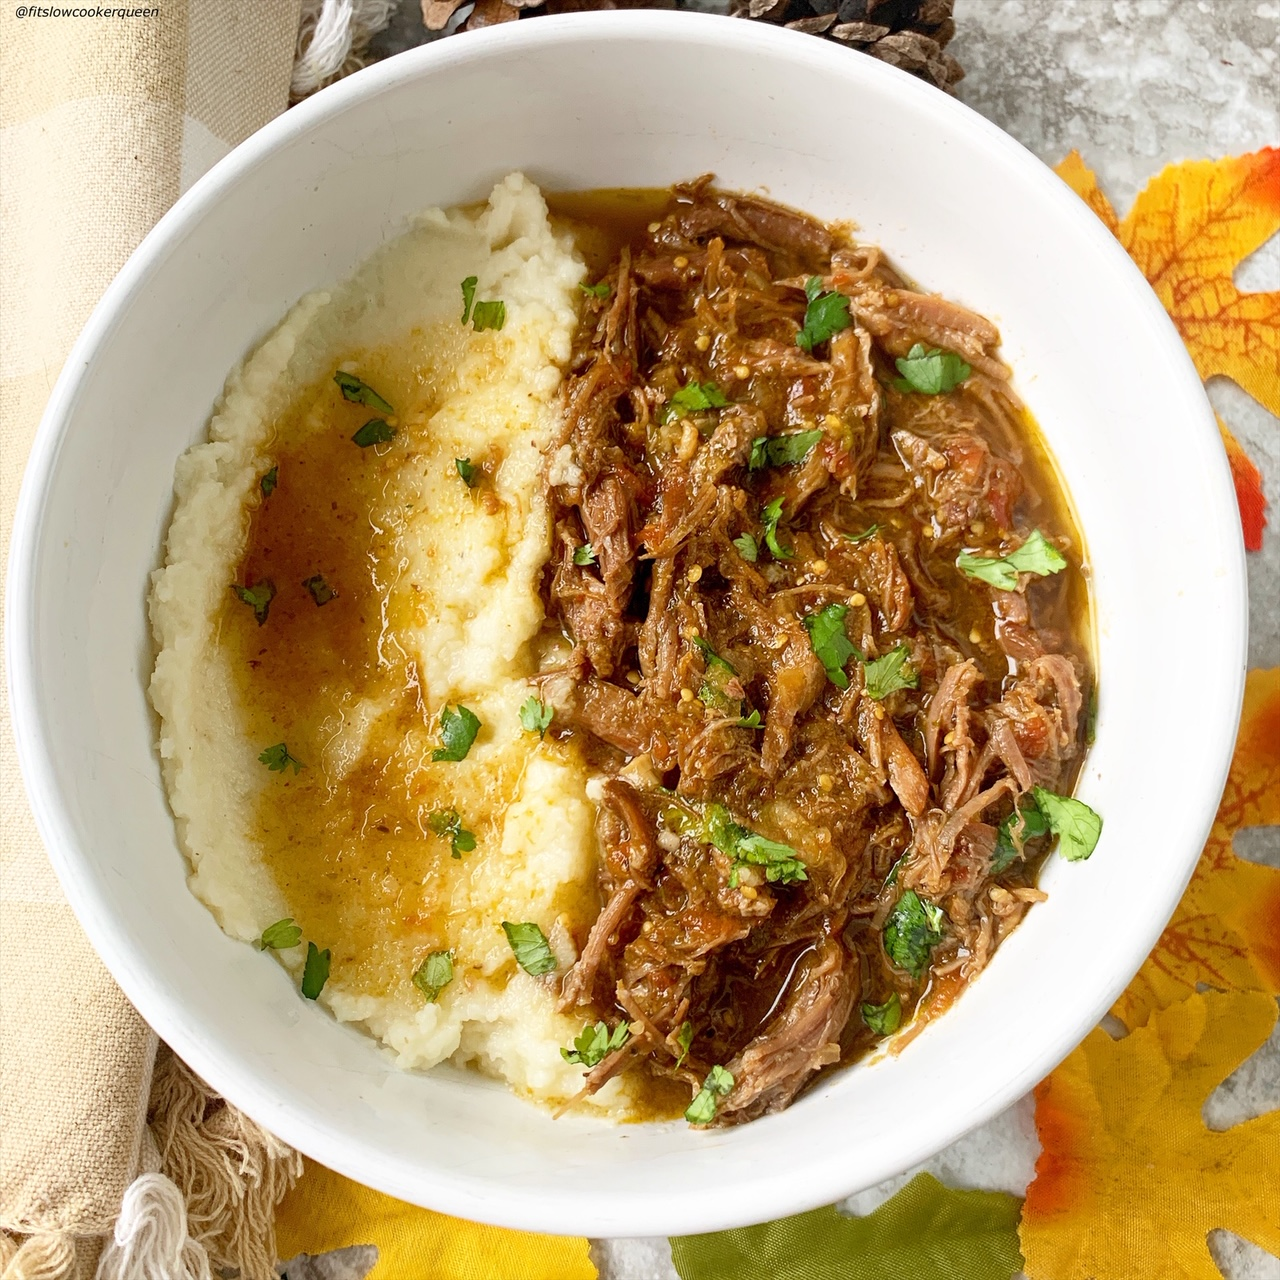 shredded salsa verde beef in a bowl with mashed cauliflower